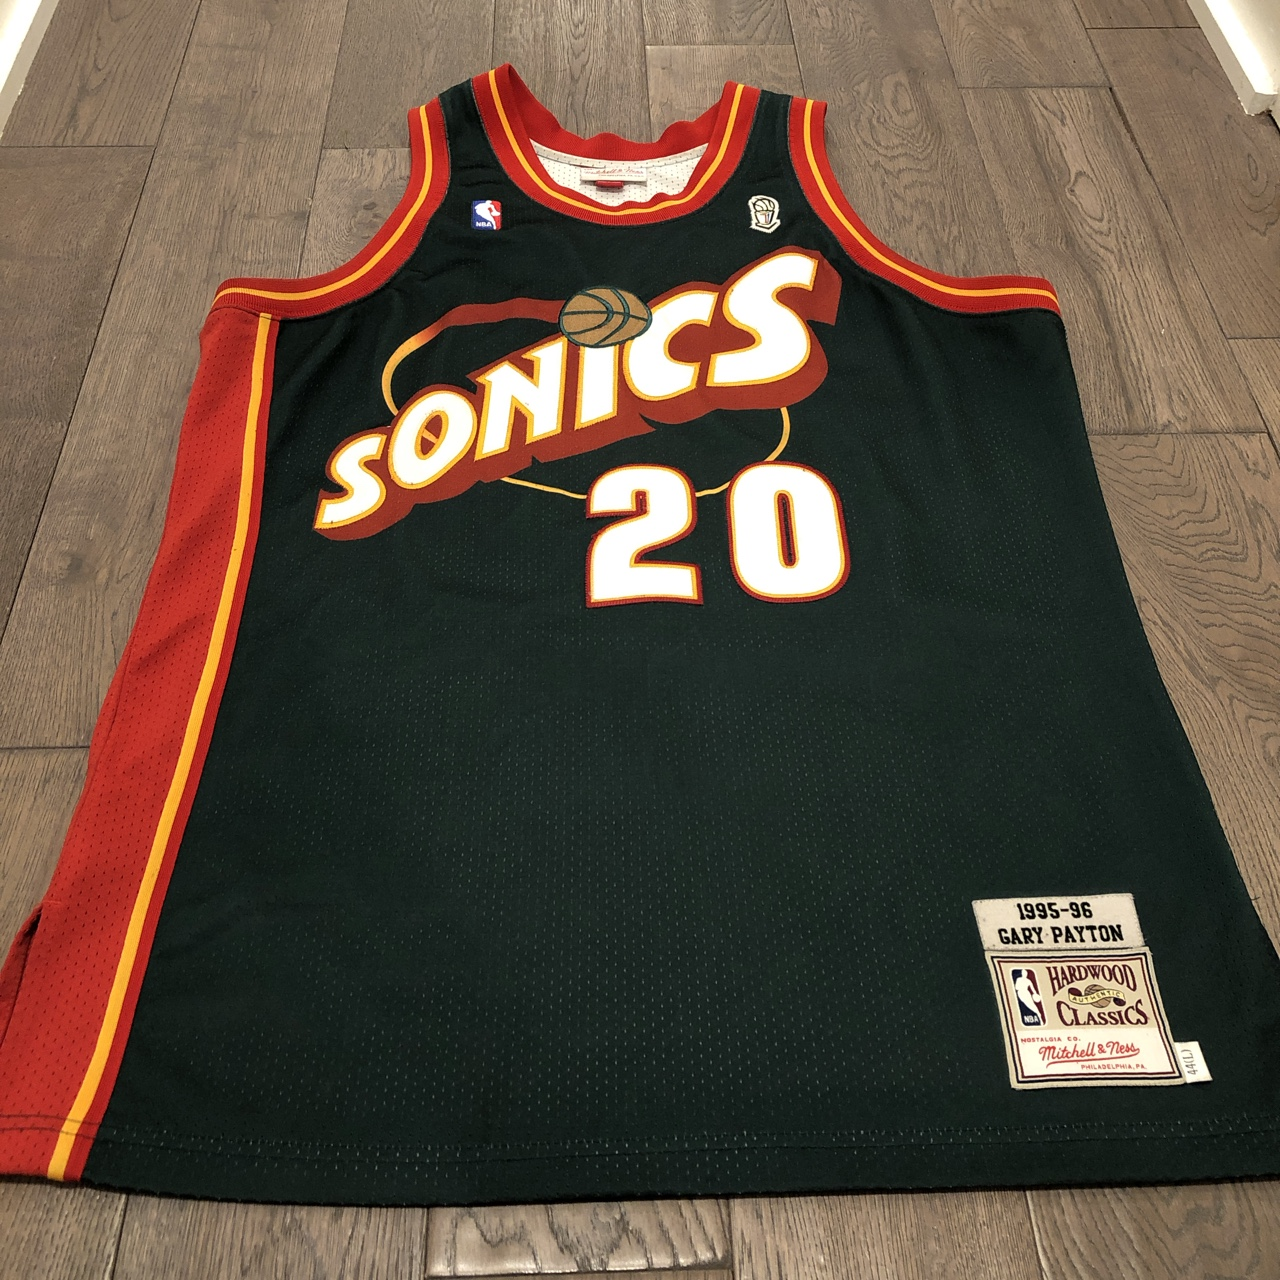 new products 6ff19 eda4d Gary Payton Mitchell and Ness Super Sonics Jersey.... - Depop